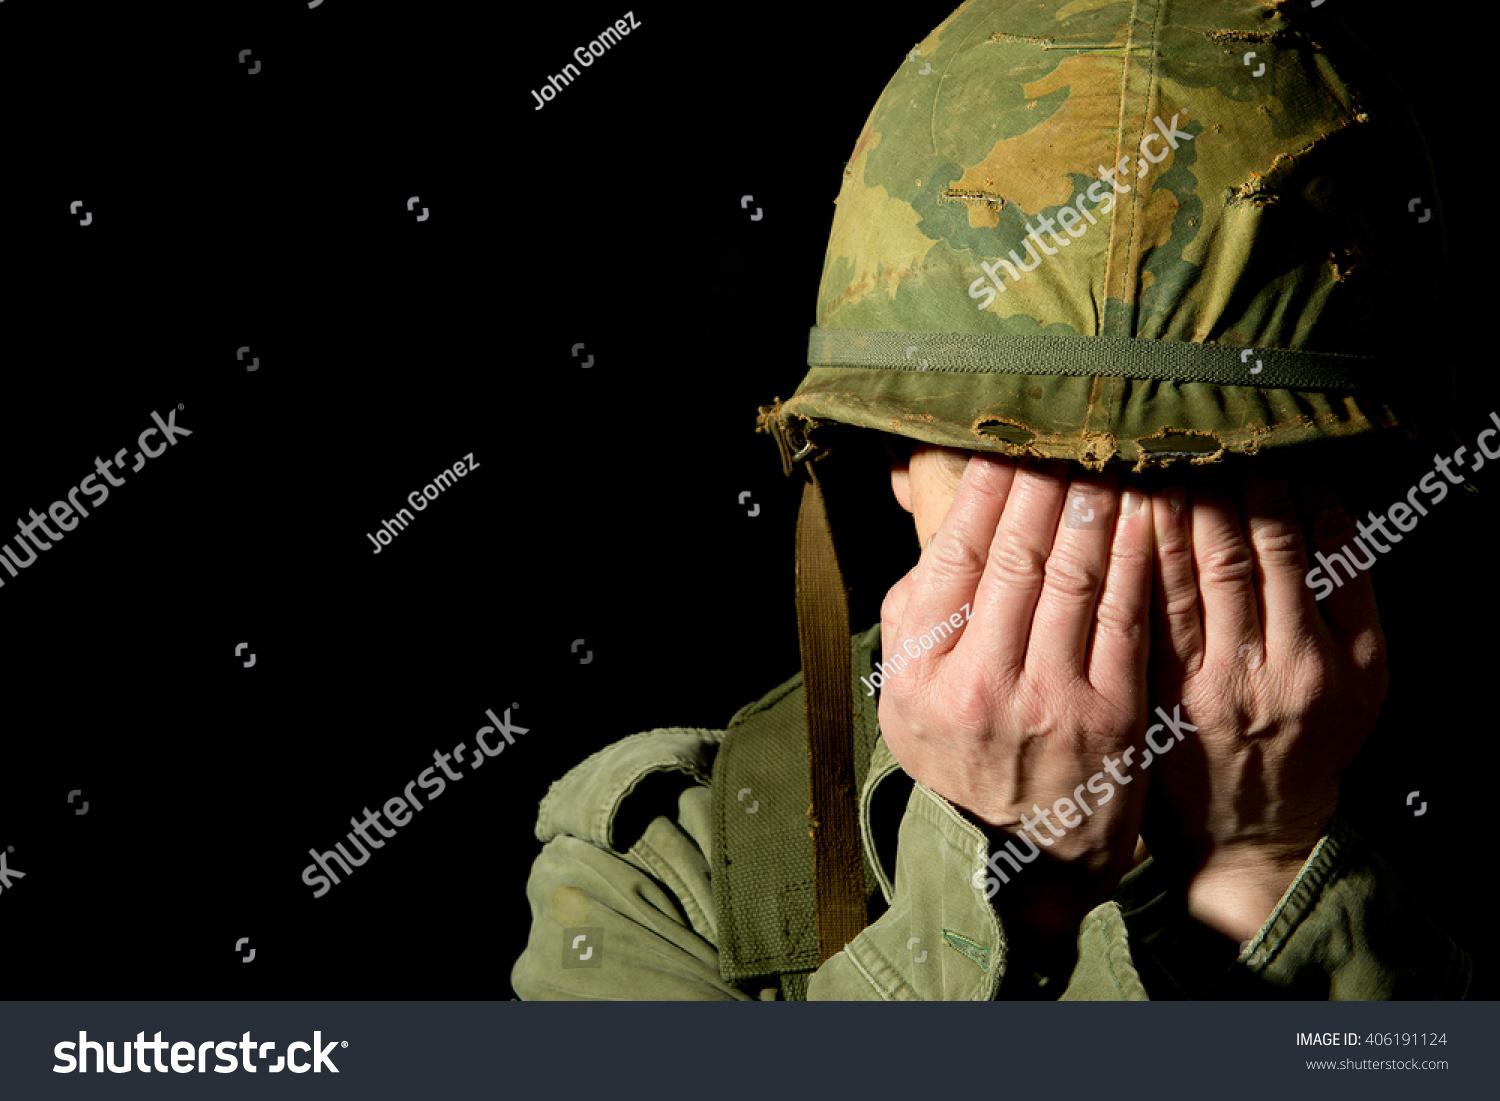 american soldiers crying - photo #41